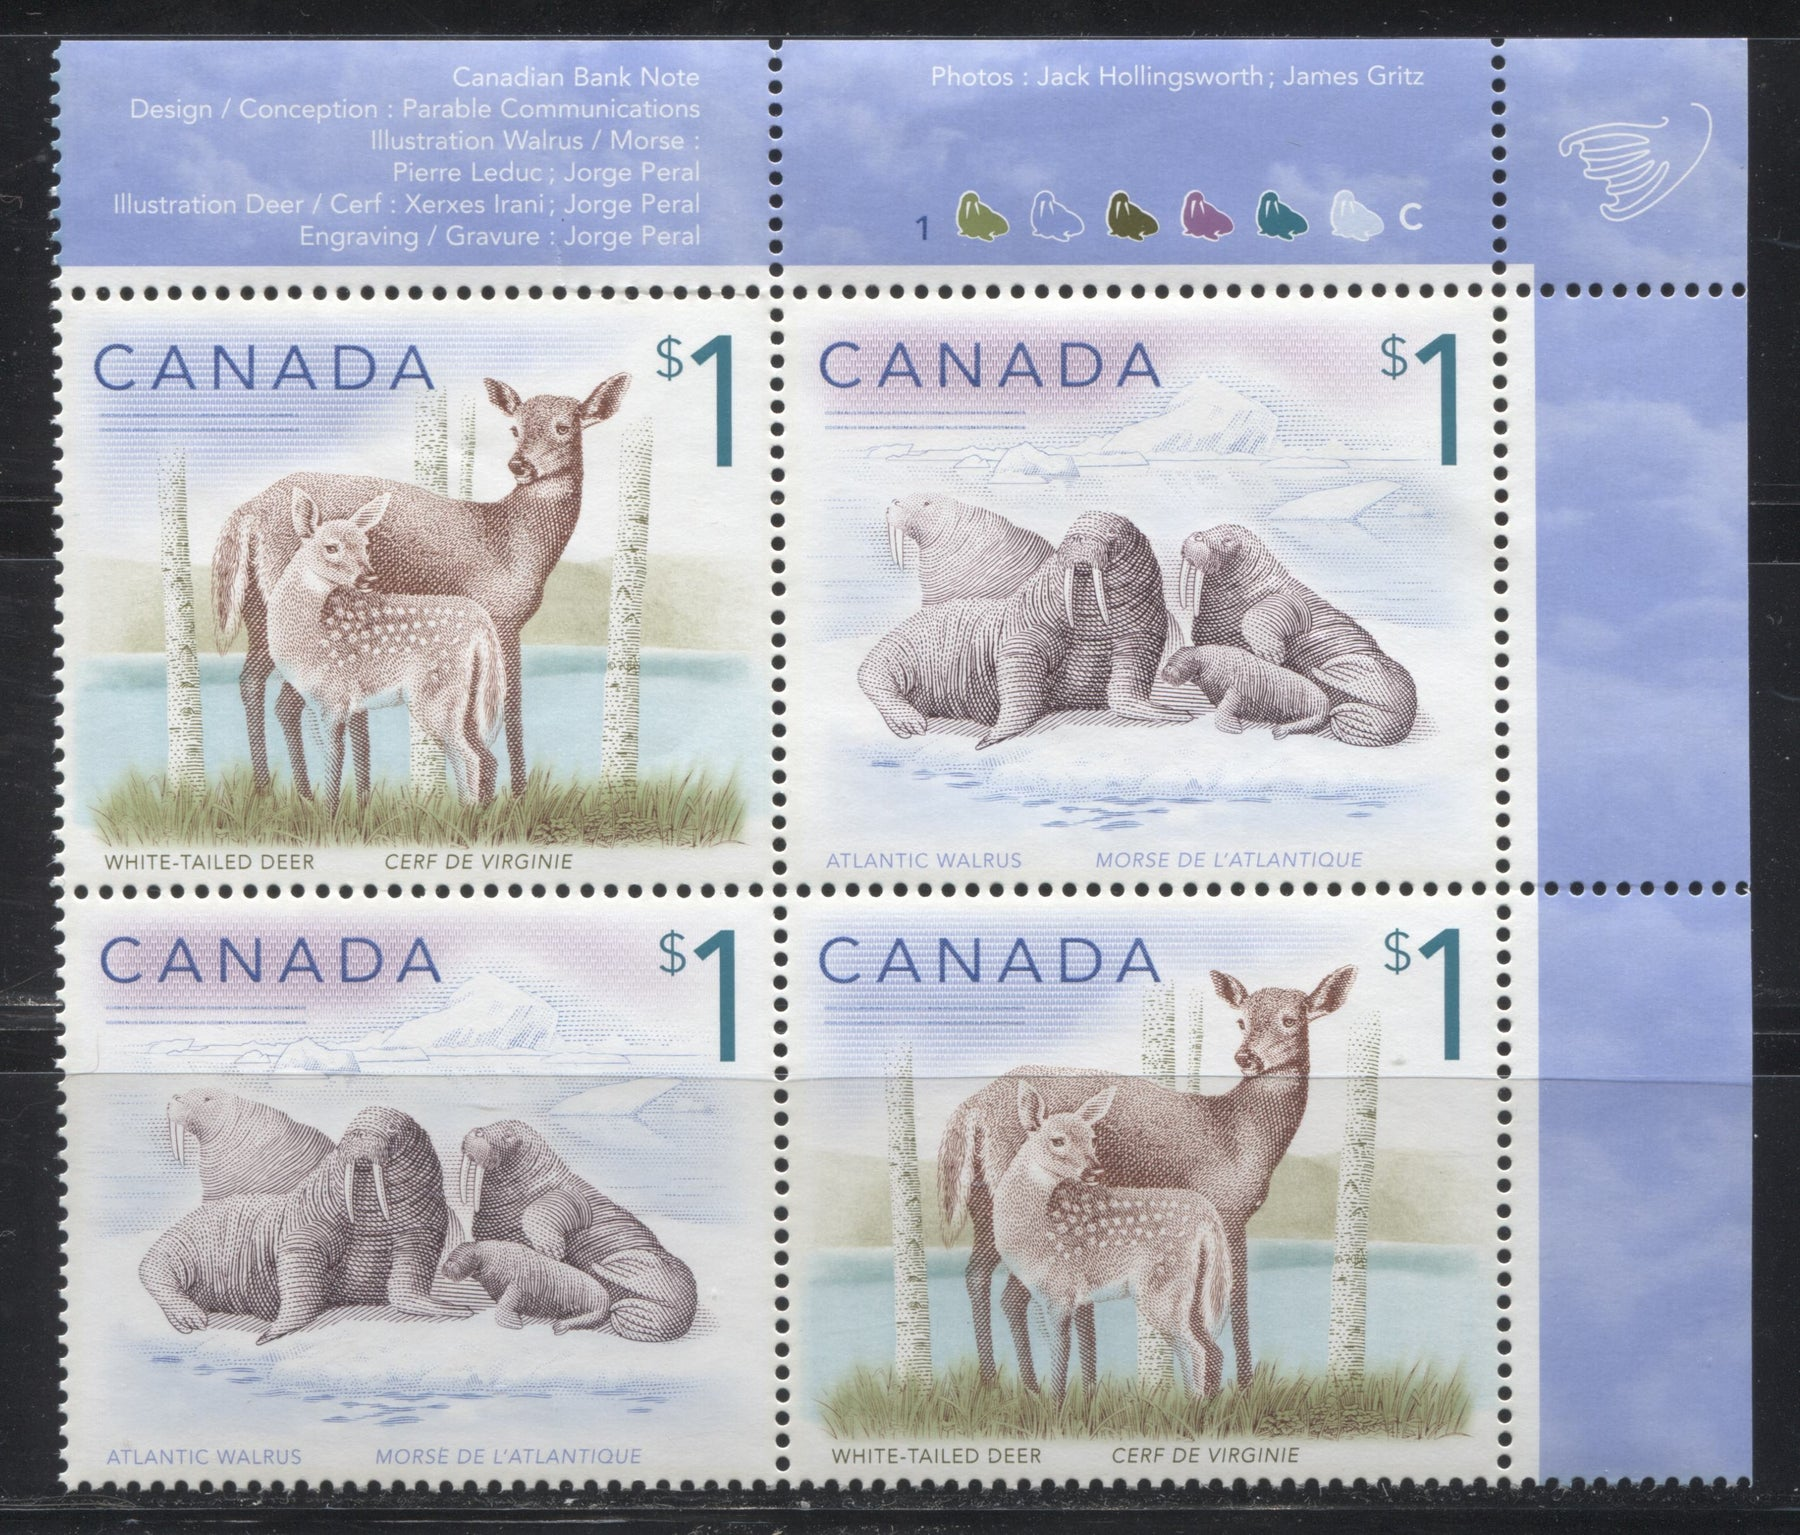 Canada #1689ai $1 Multicoloured, White Tailed Deer & Atlantic Walrus, 1998-2005 Trades and Wildlife Issue, a VF NH UR 2009 Reprint Plate Block Printed on Dead/NF Coated Papers Paper